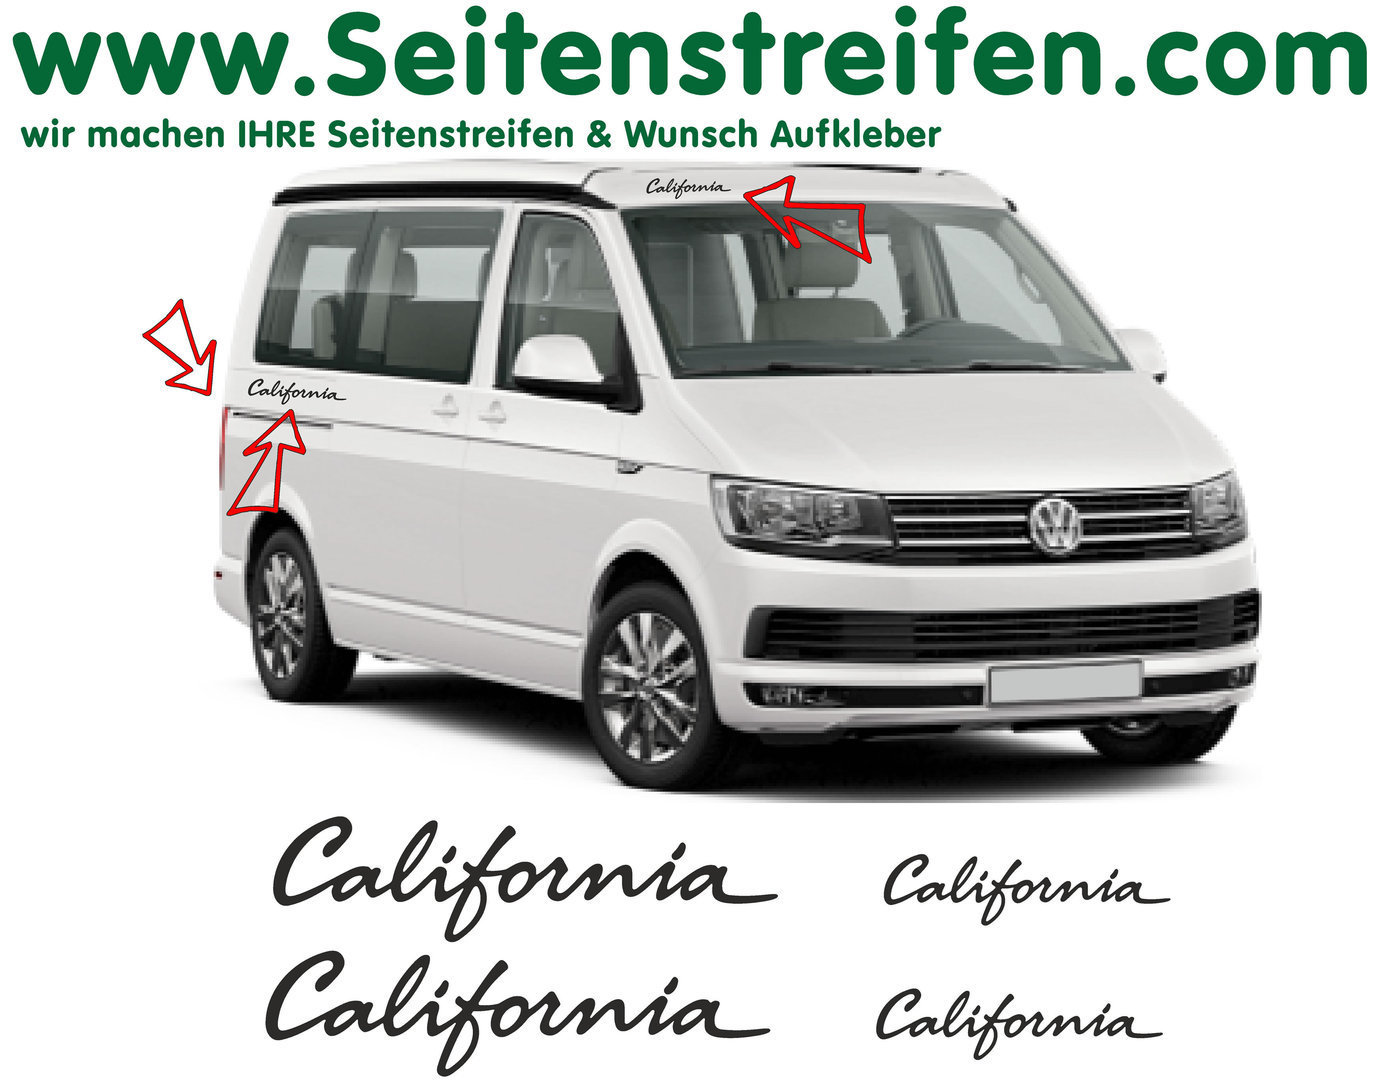 VW T4 T5 T6 California set de 4 pegatinas  N°: 6683